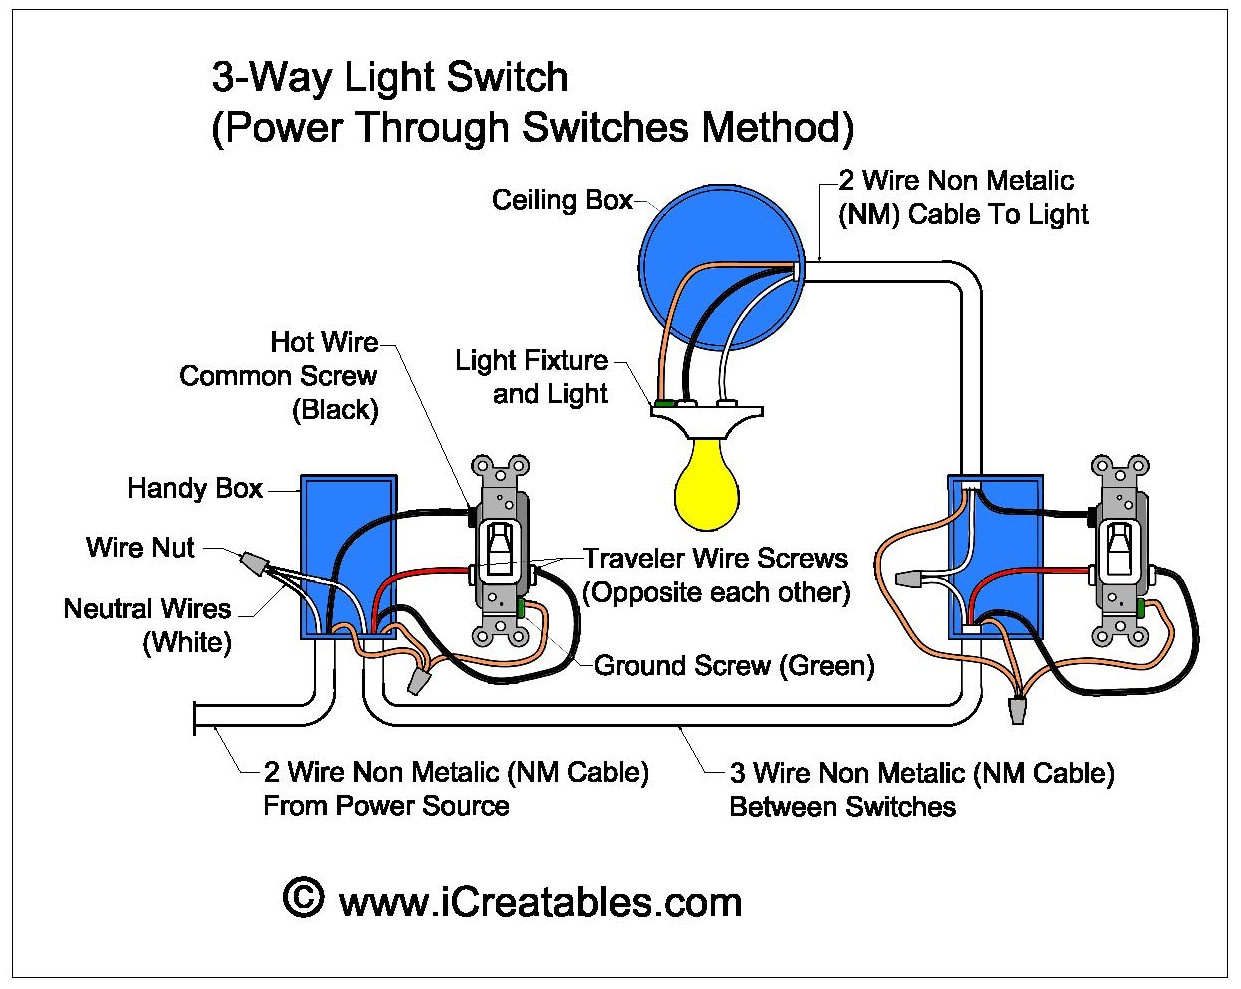 Using 3 Wires Switch Diagram Wiring Diagrams Proximity Sensor Together With Wire A Three Way Icreatables Com Easy